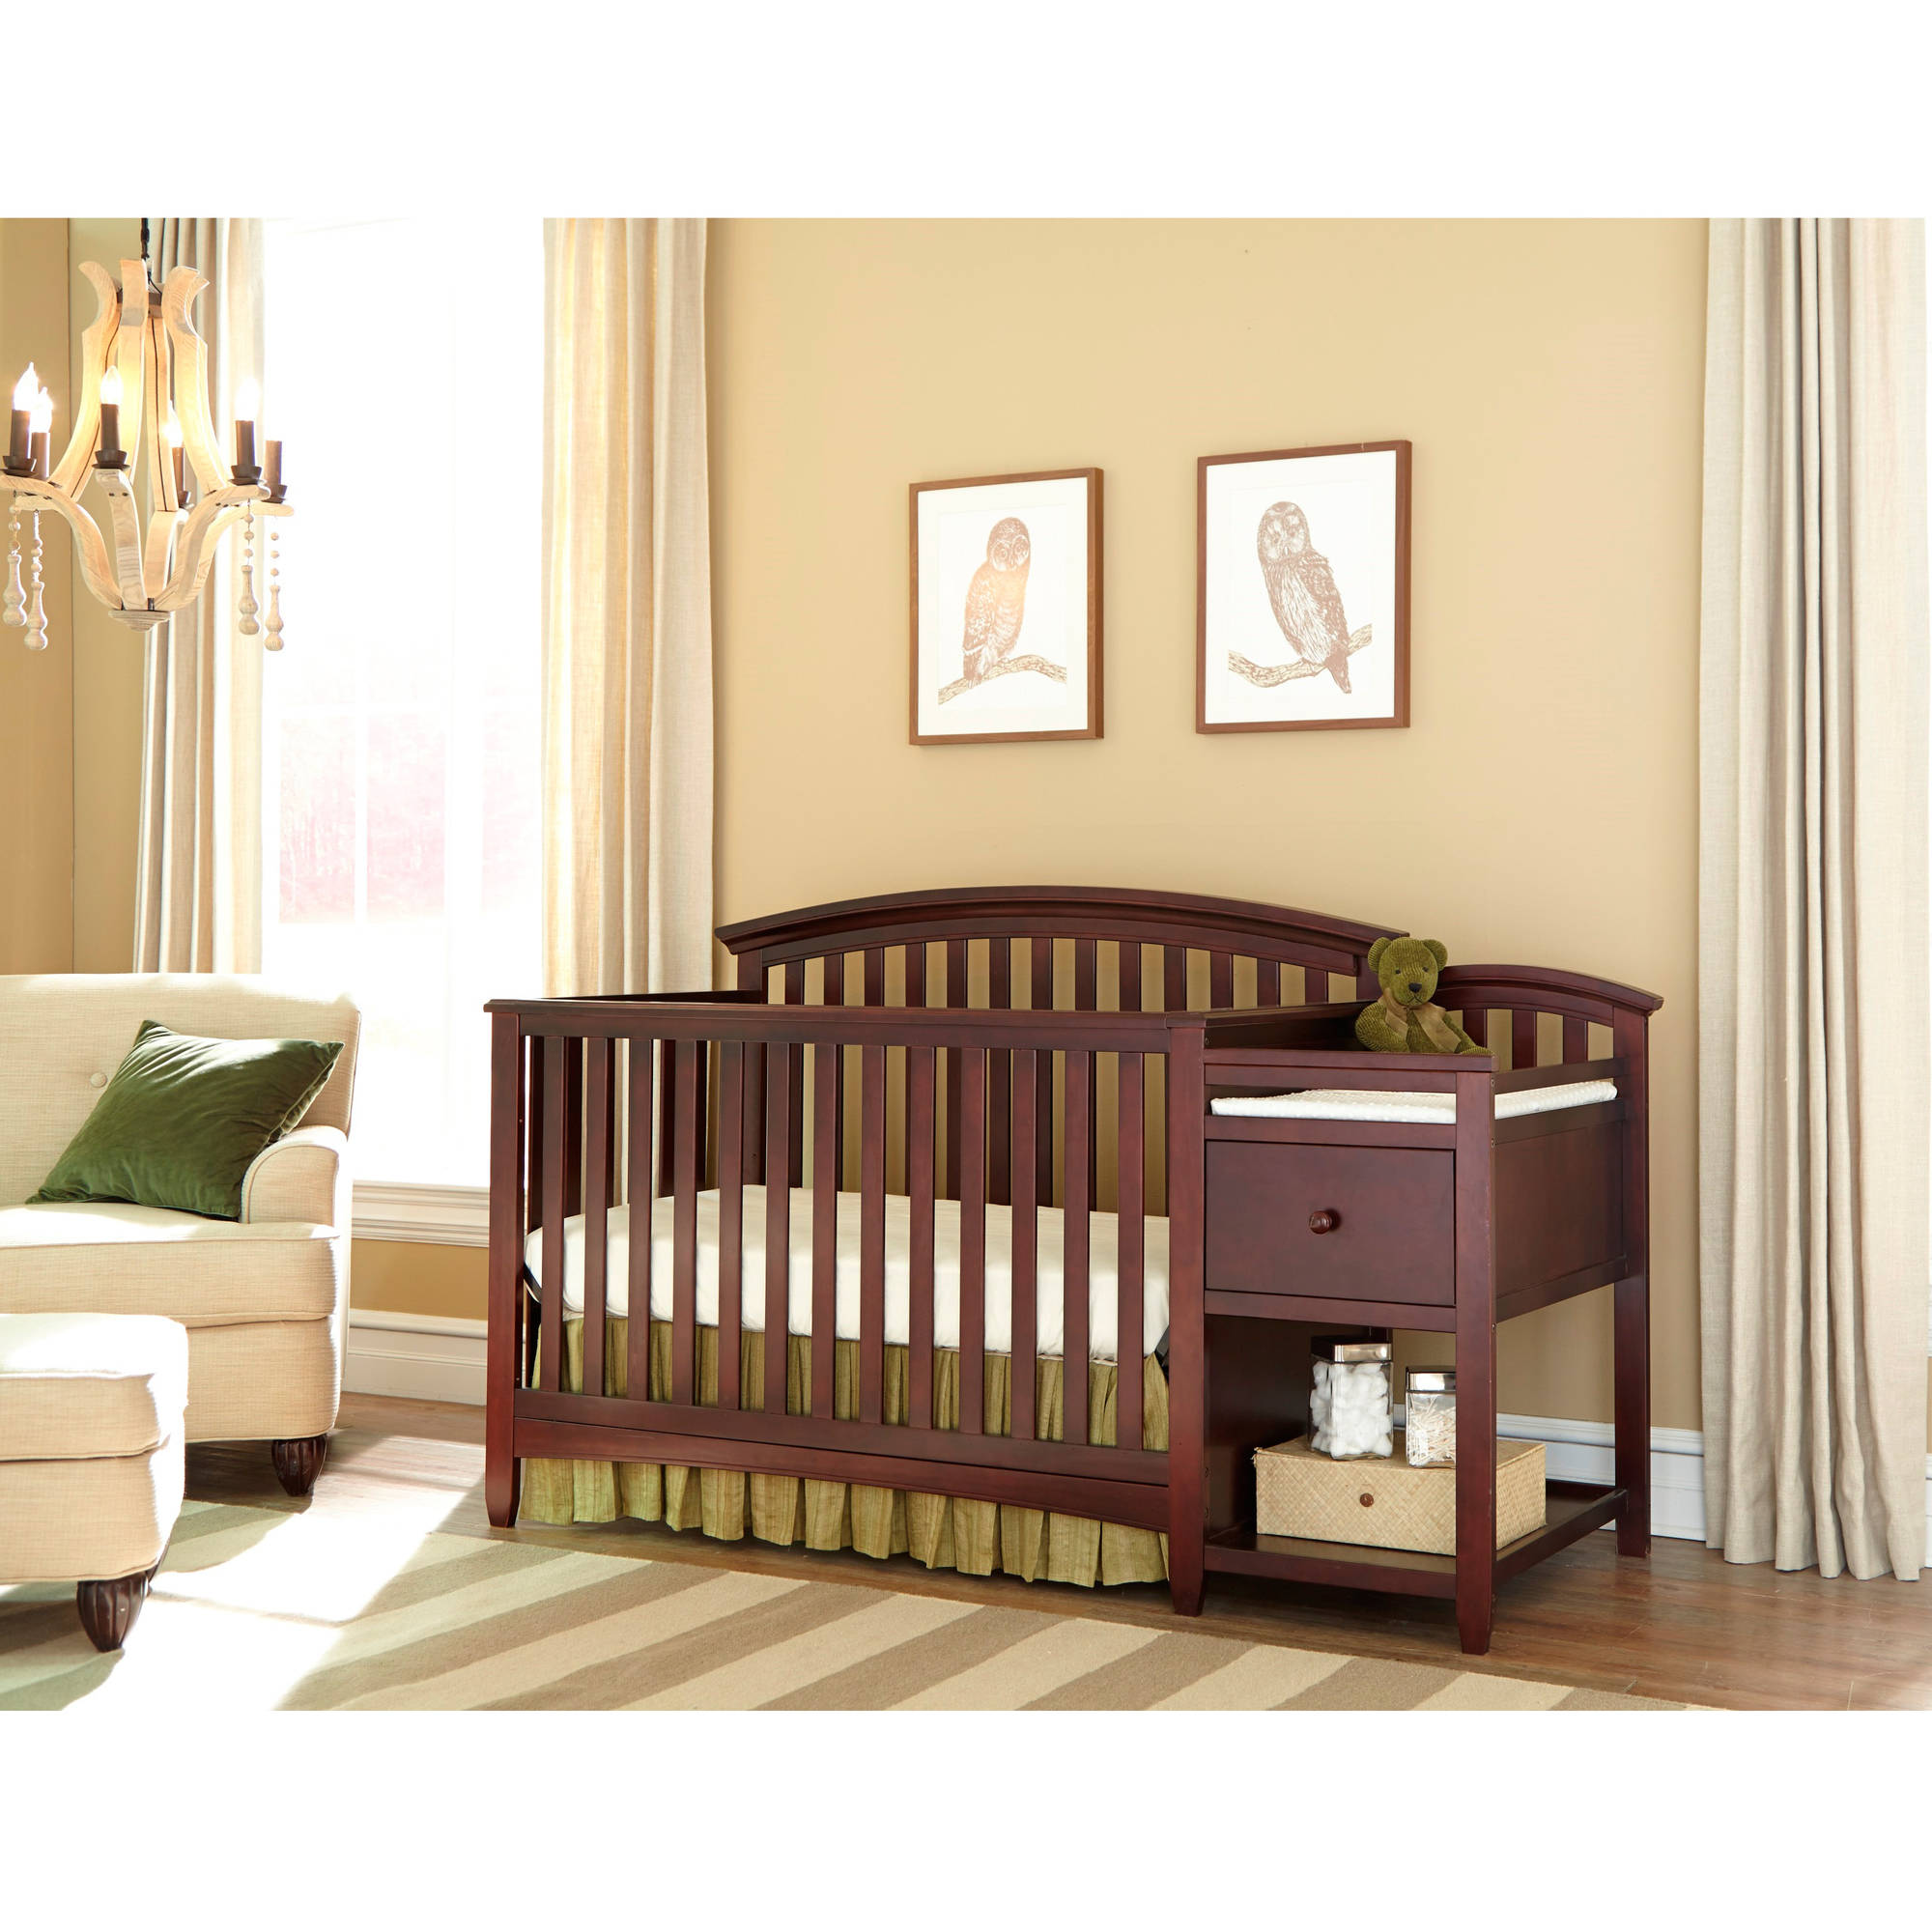 Crib for sale wichita ks - Imagio Baby Montville 4 In 1 Fixed Side Crib And Changing Table Combo